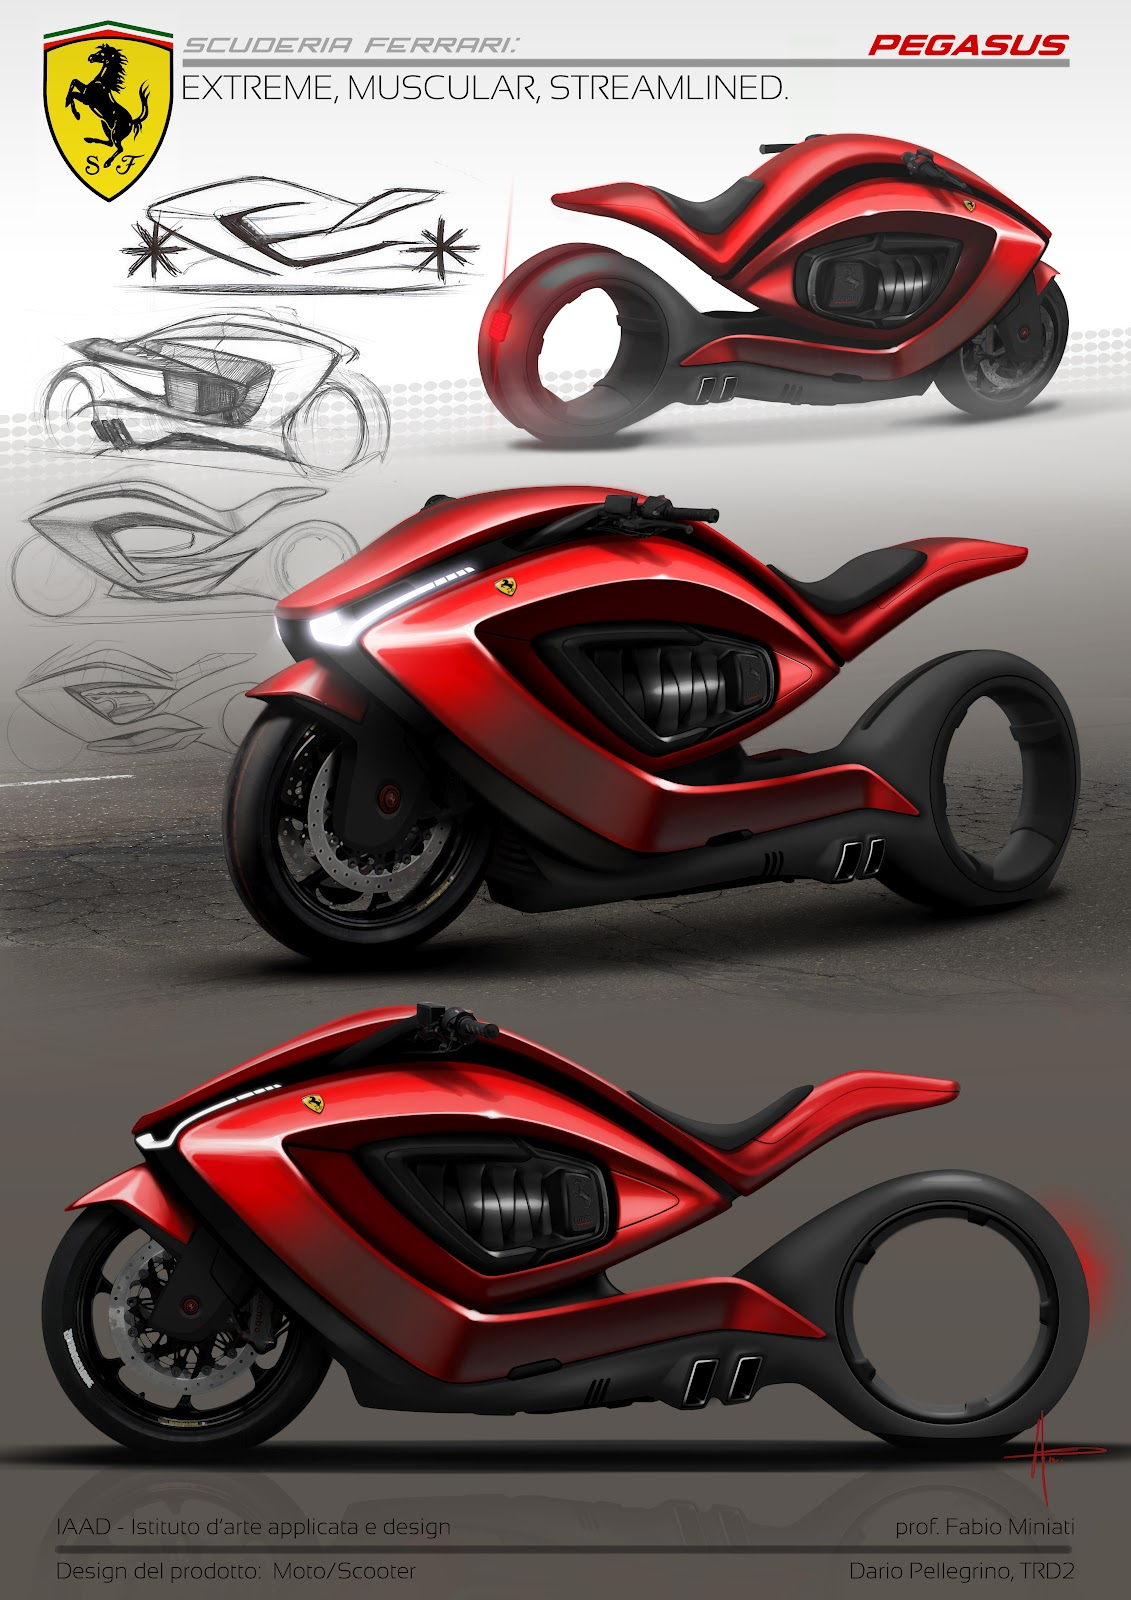 Ferrari Motorcycle | Ferrari Motorcycle Concept | Ferrari Motorcycle design | Ferrari Motorcycle Rendering | way2speed.com